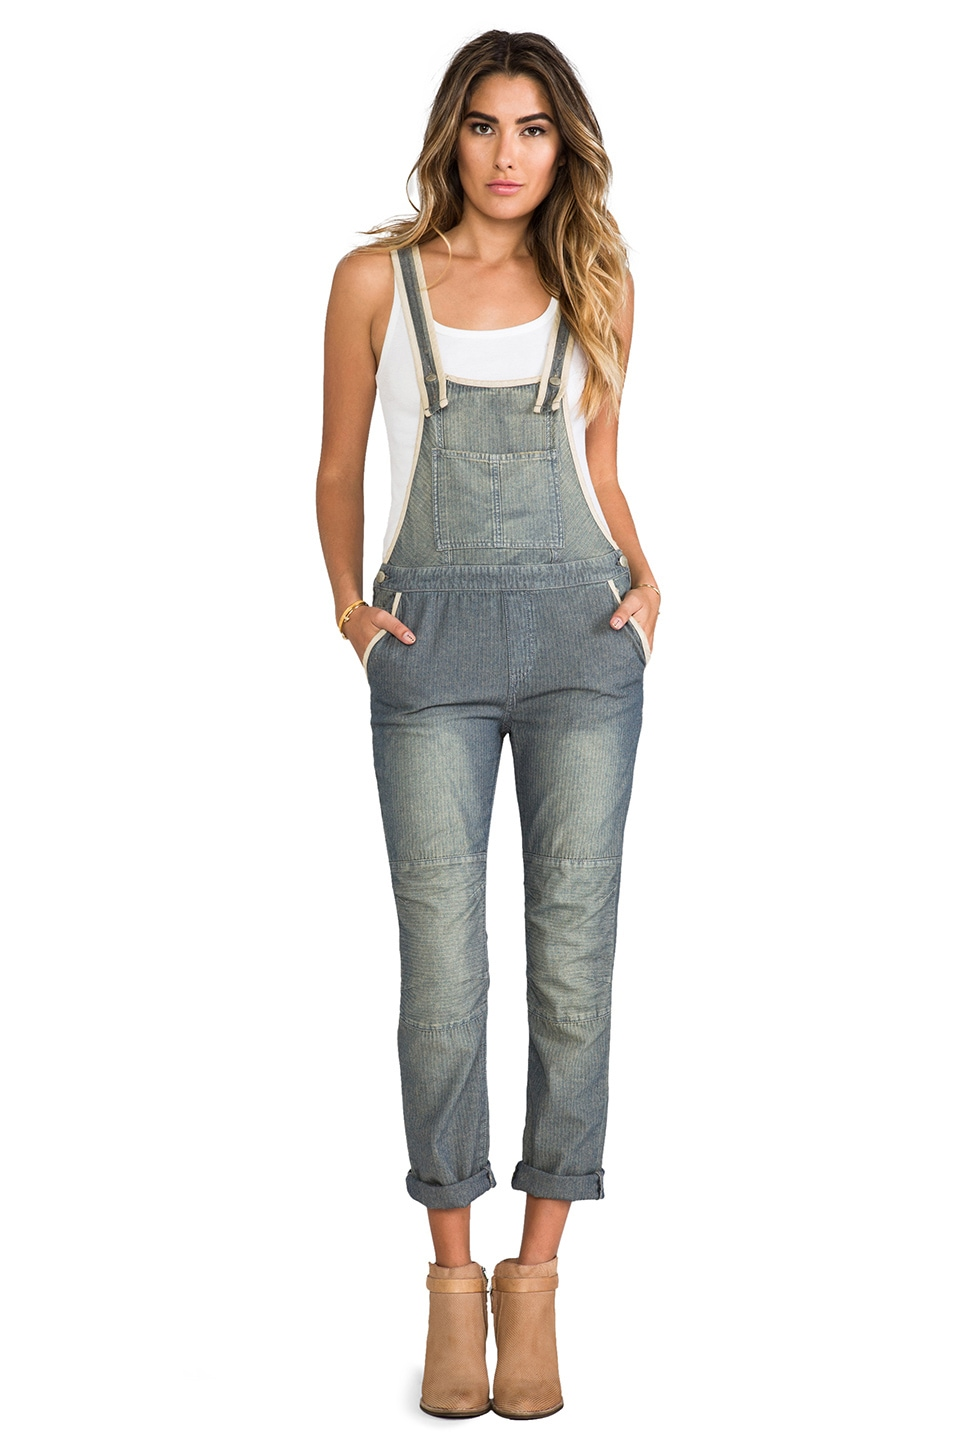 Free People Thomas Overall in Fennel